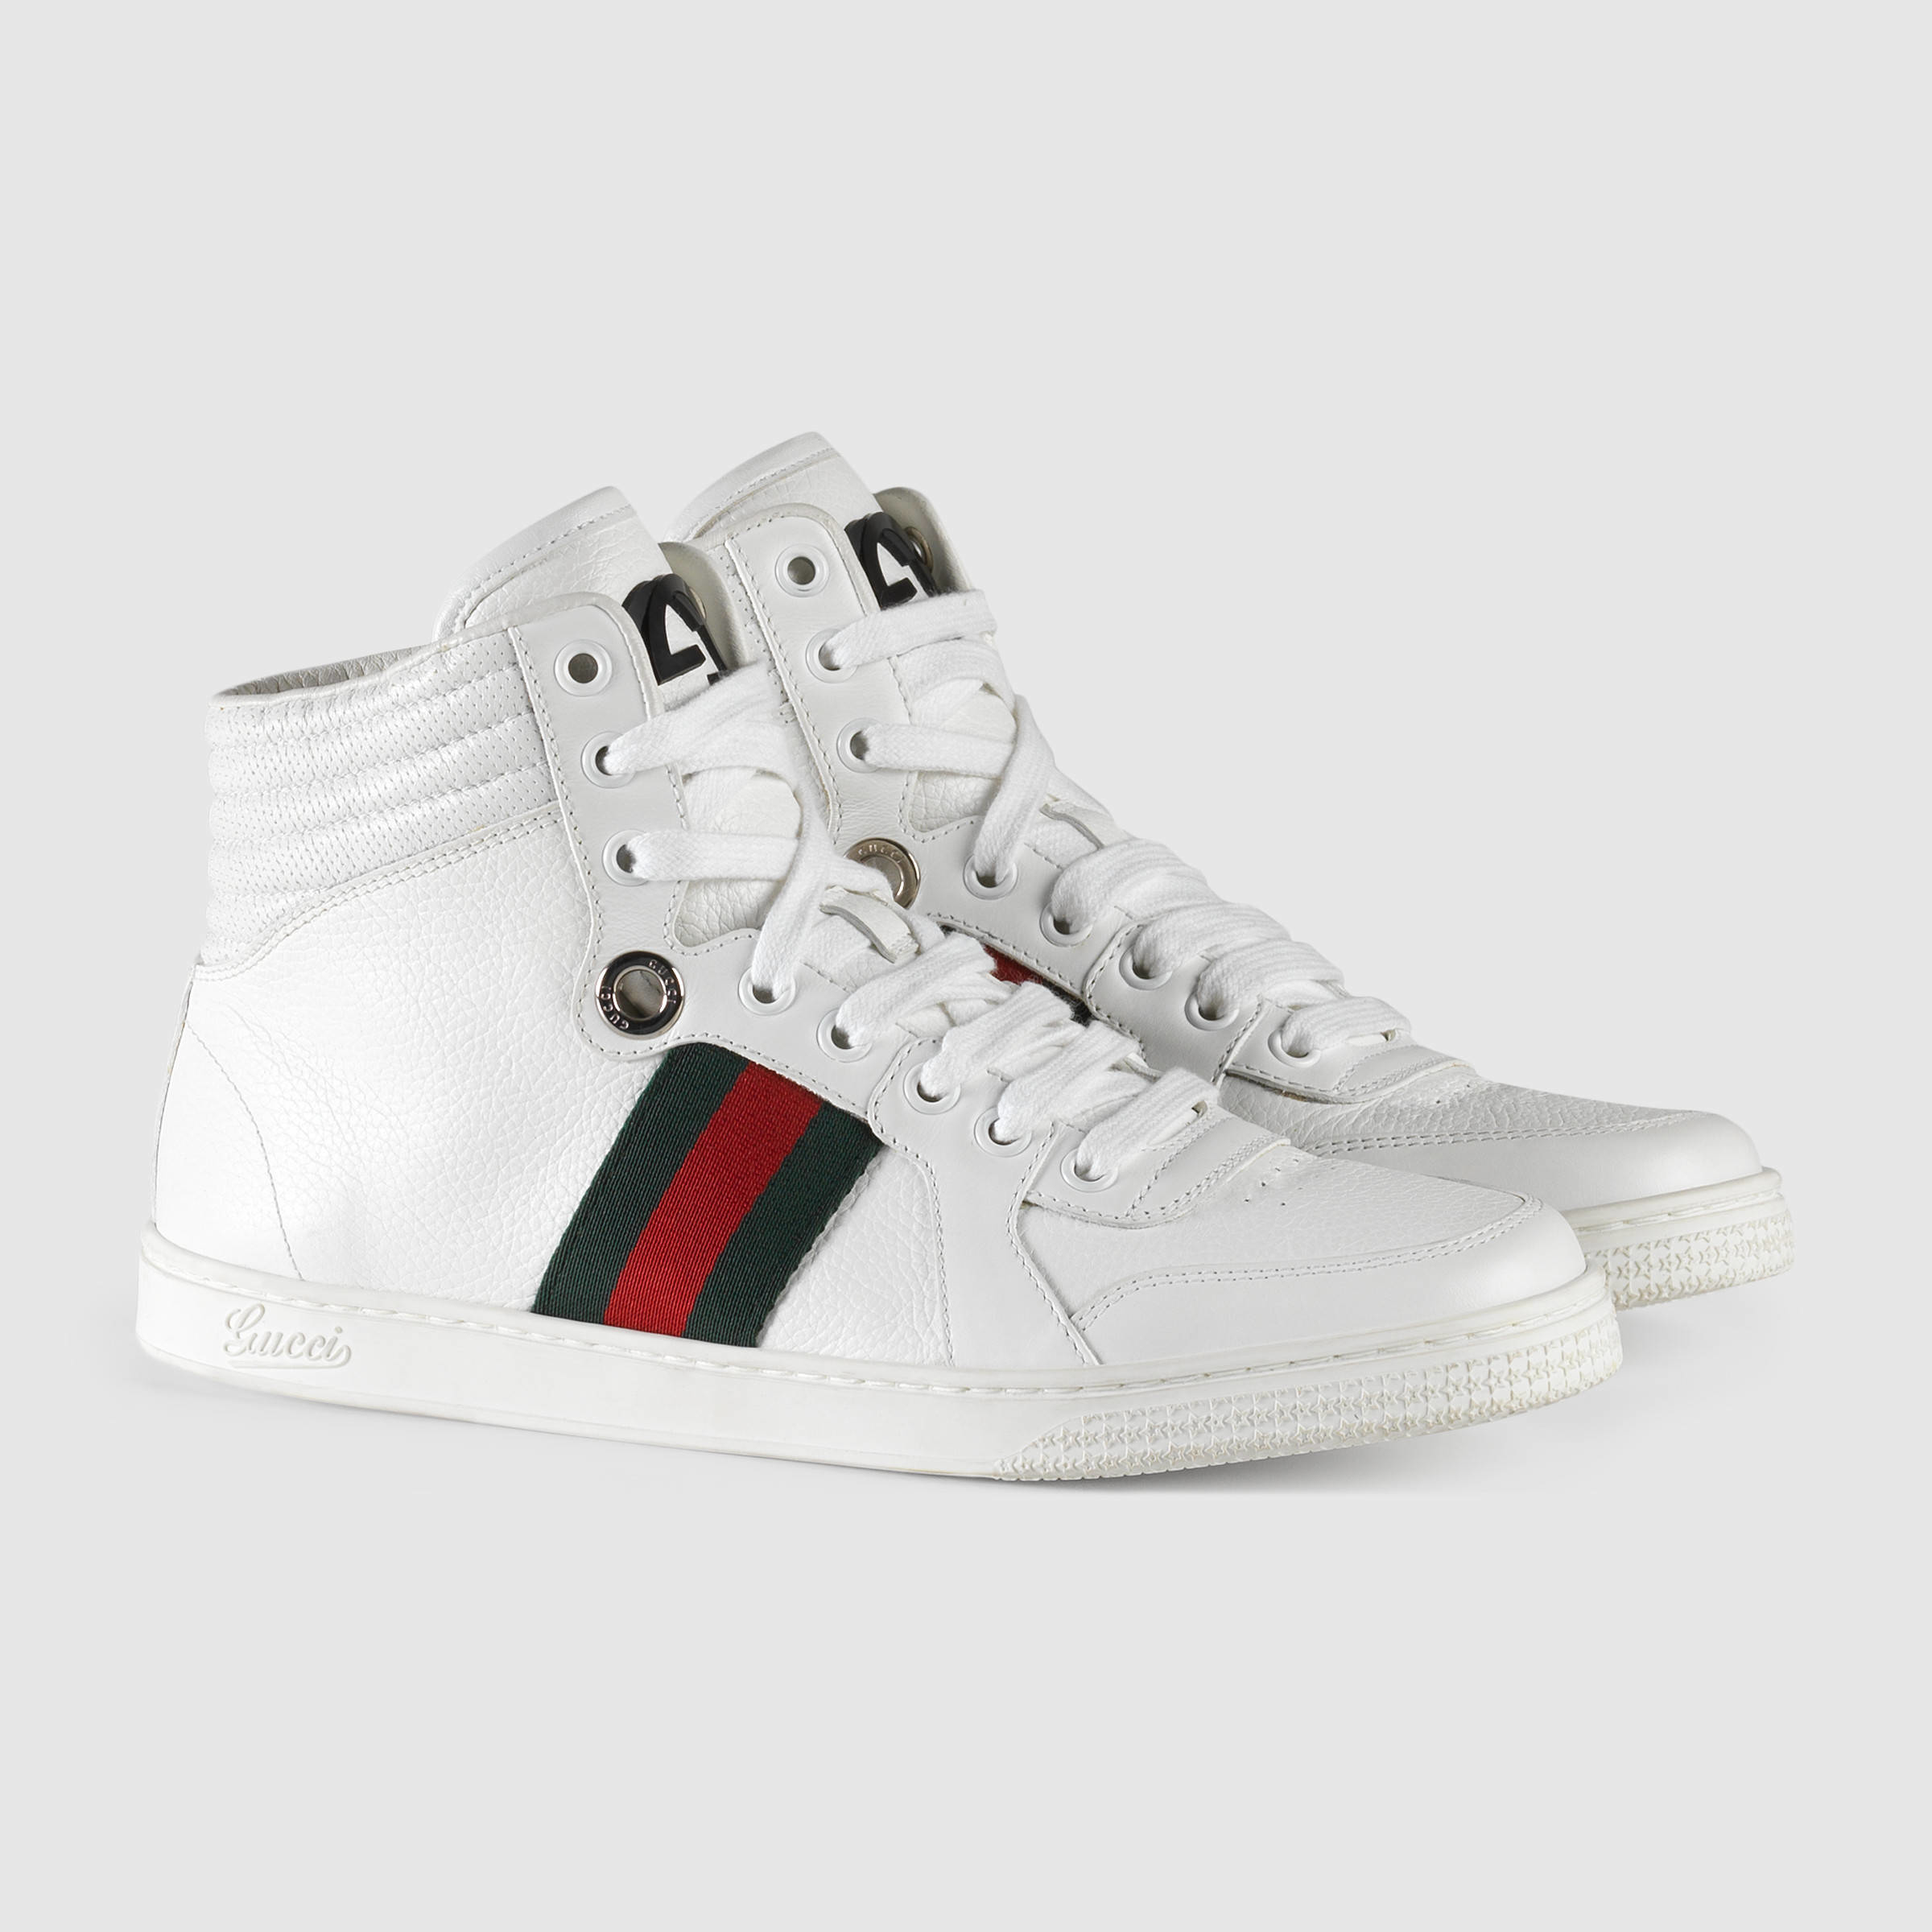 The hardest part about finding the best white sneakers is that every brand does things just a teensy bit differently. But while the sneaker market is flooded with riffs on streamlined, minimalist-leaning white leather kicks, Common Projects did it first with their Original Achilles Low model in —and they did it .